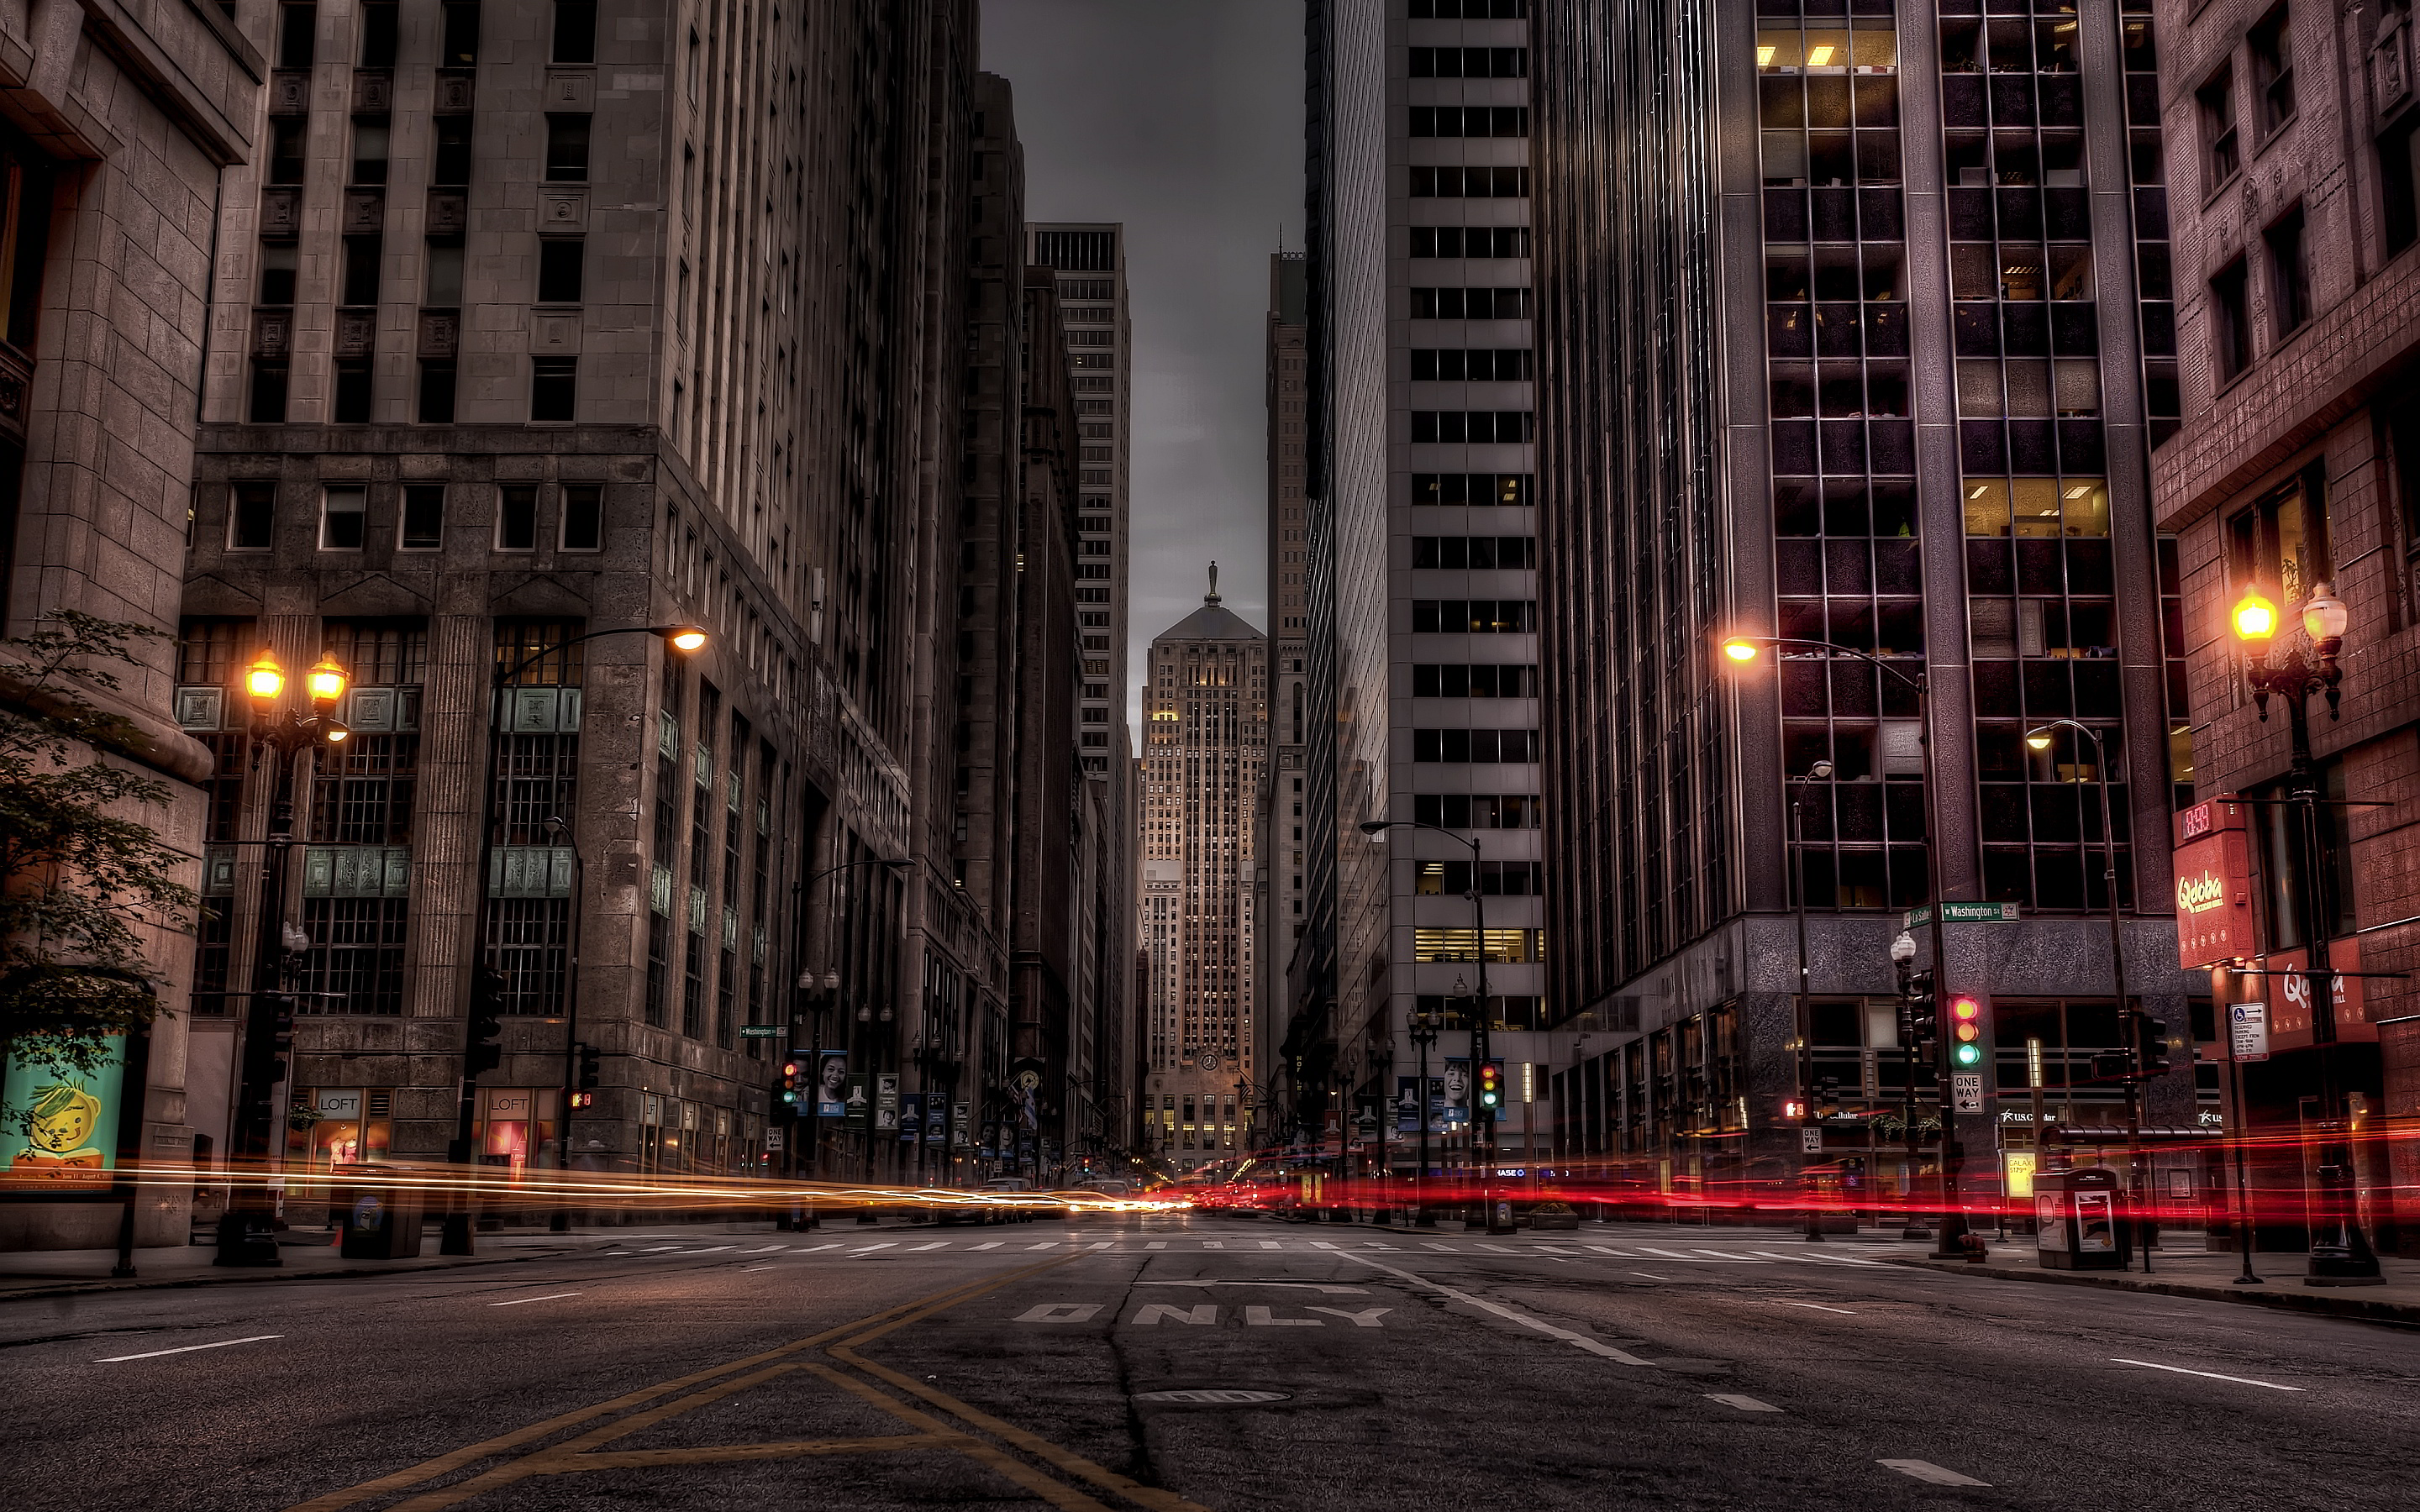 Chicago dark streets